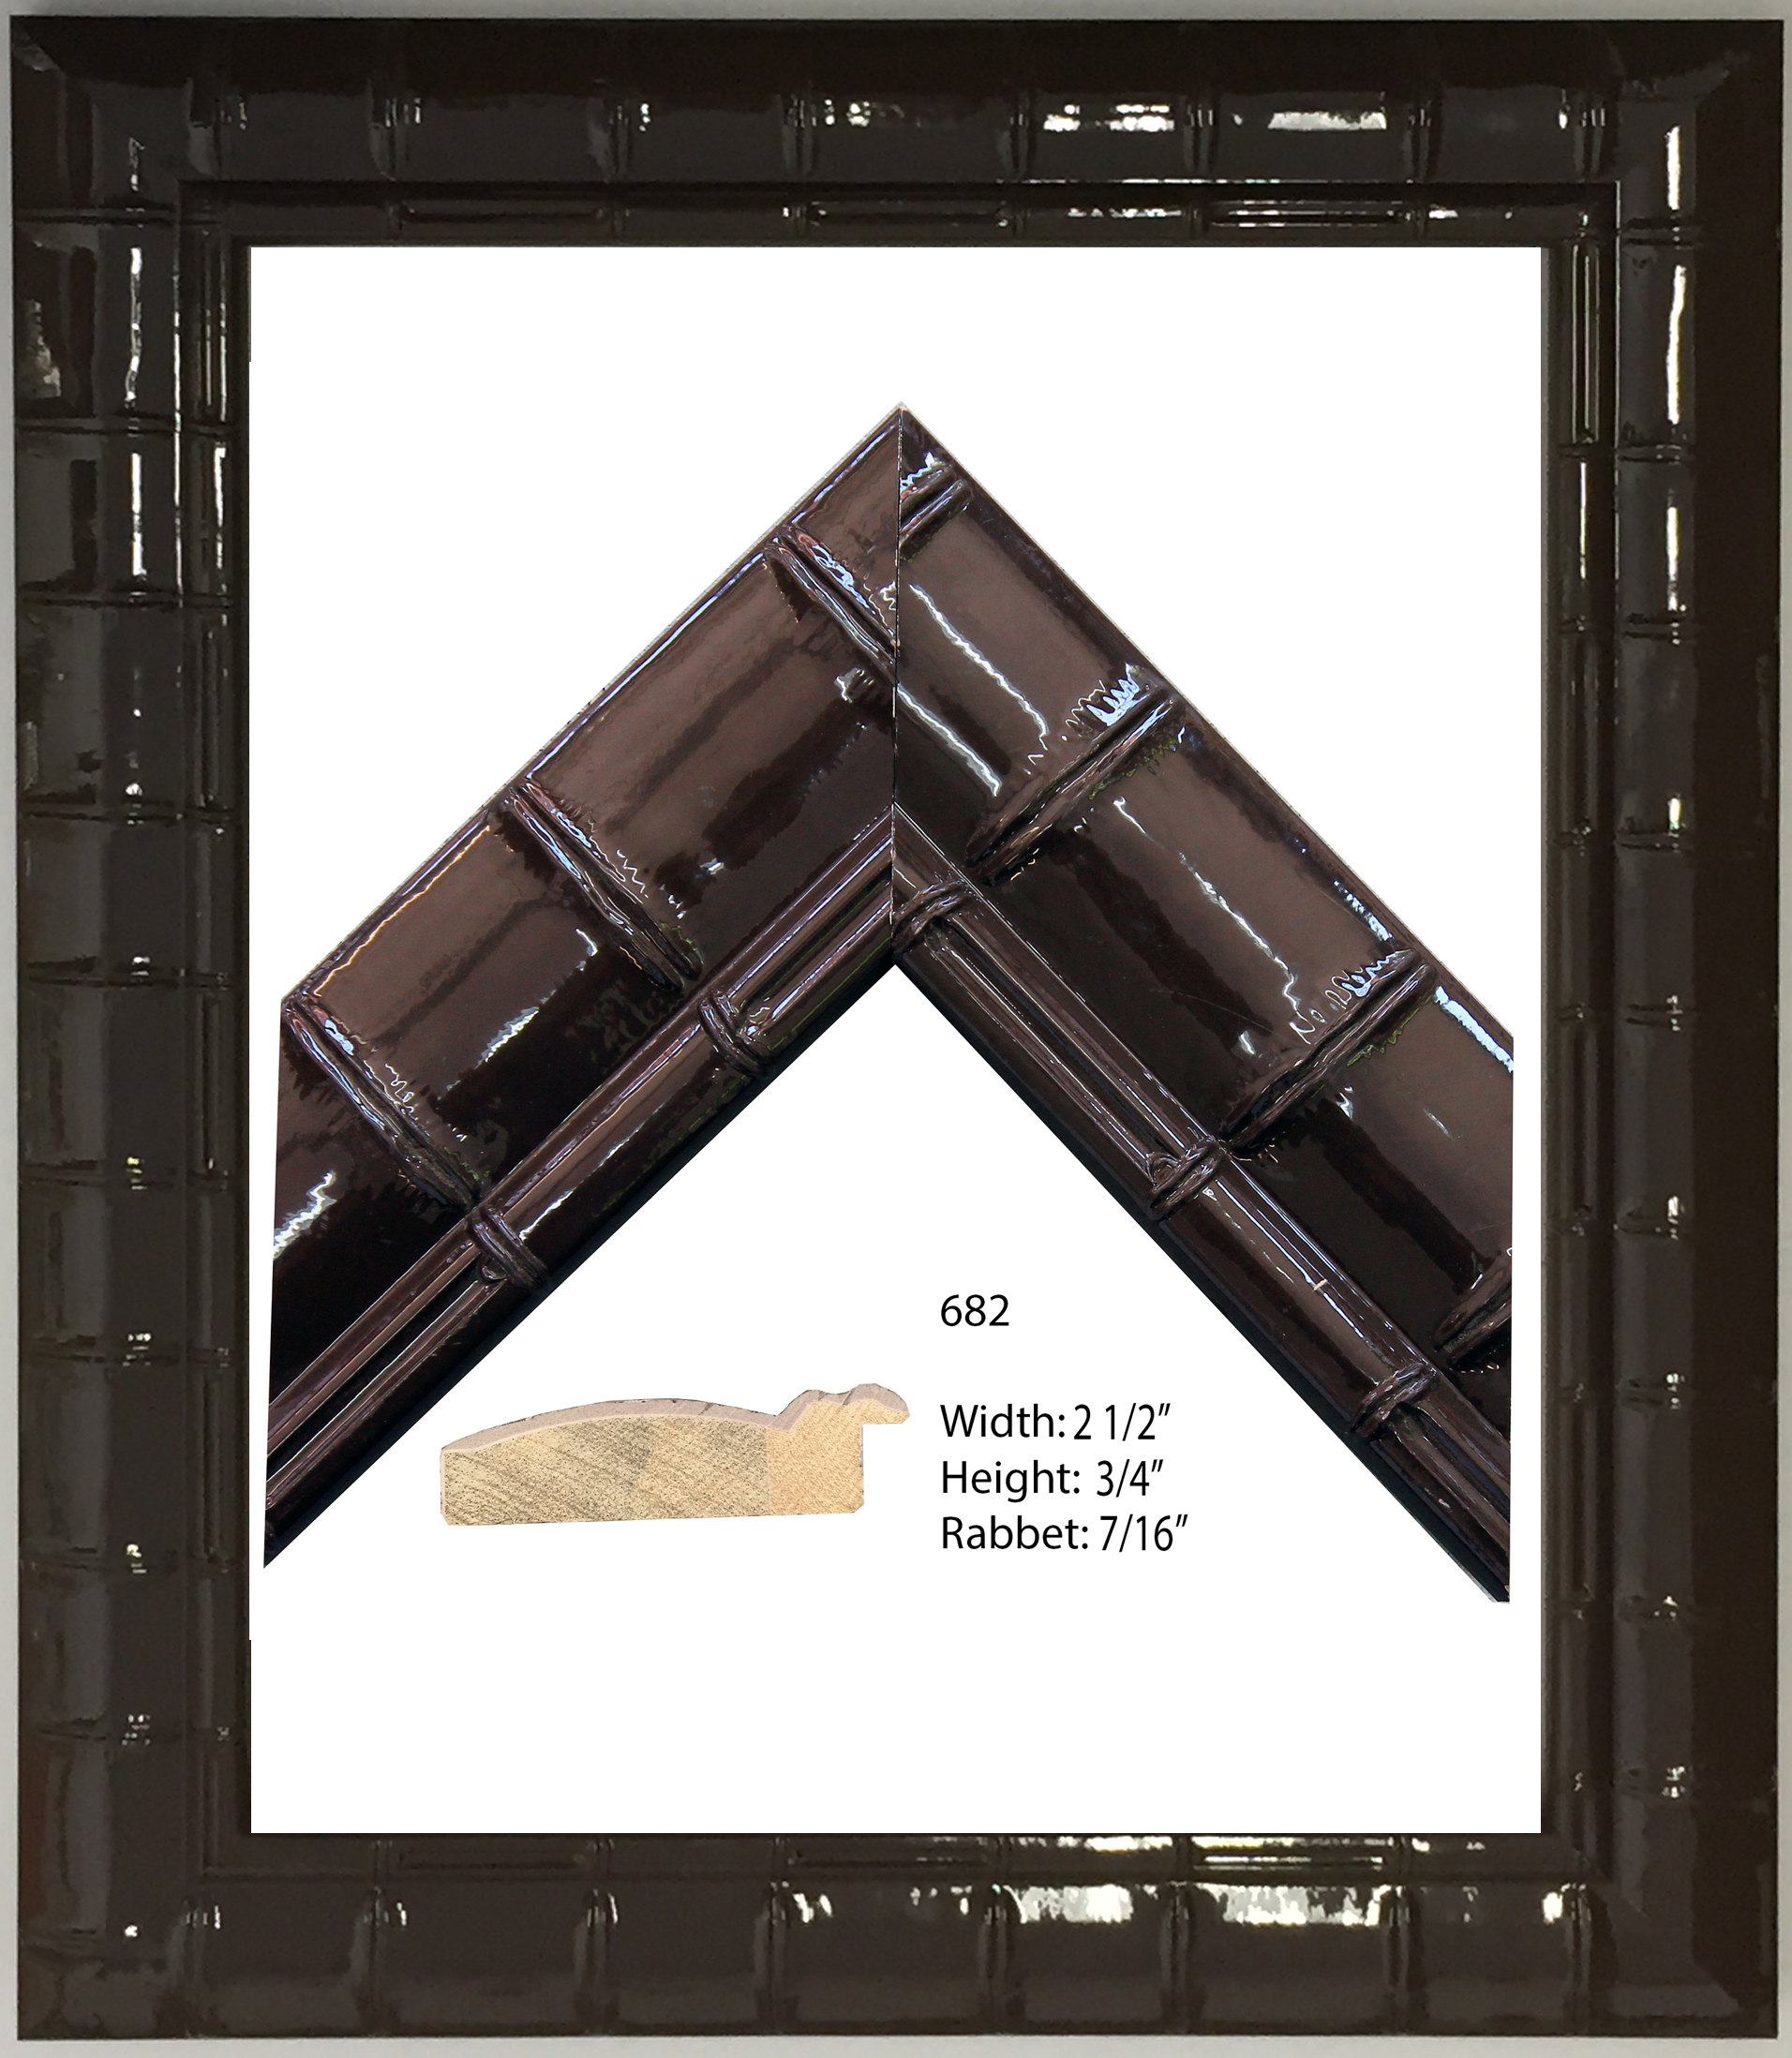 Brown Lacquer Frame 19 x 16 x 1